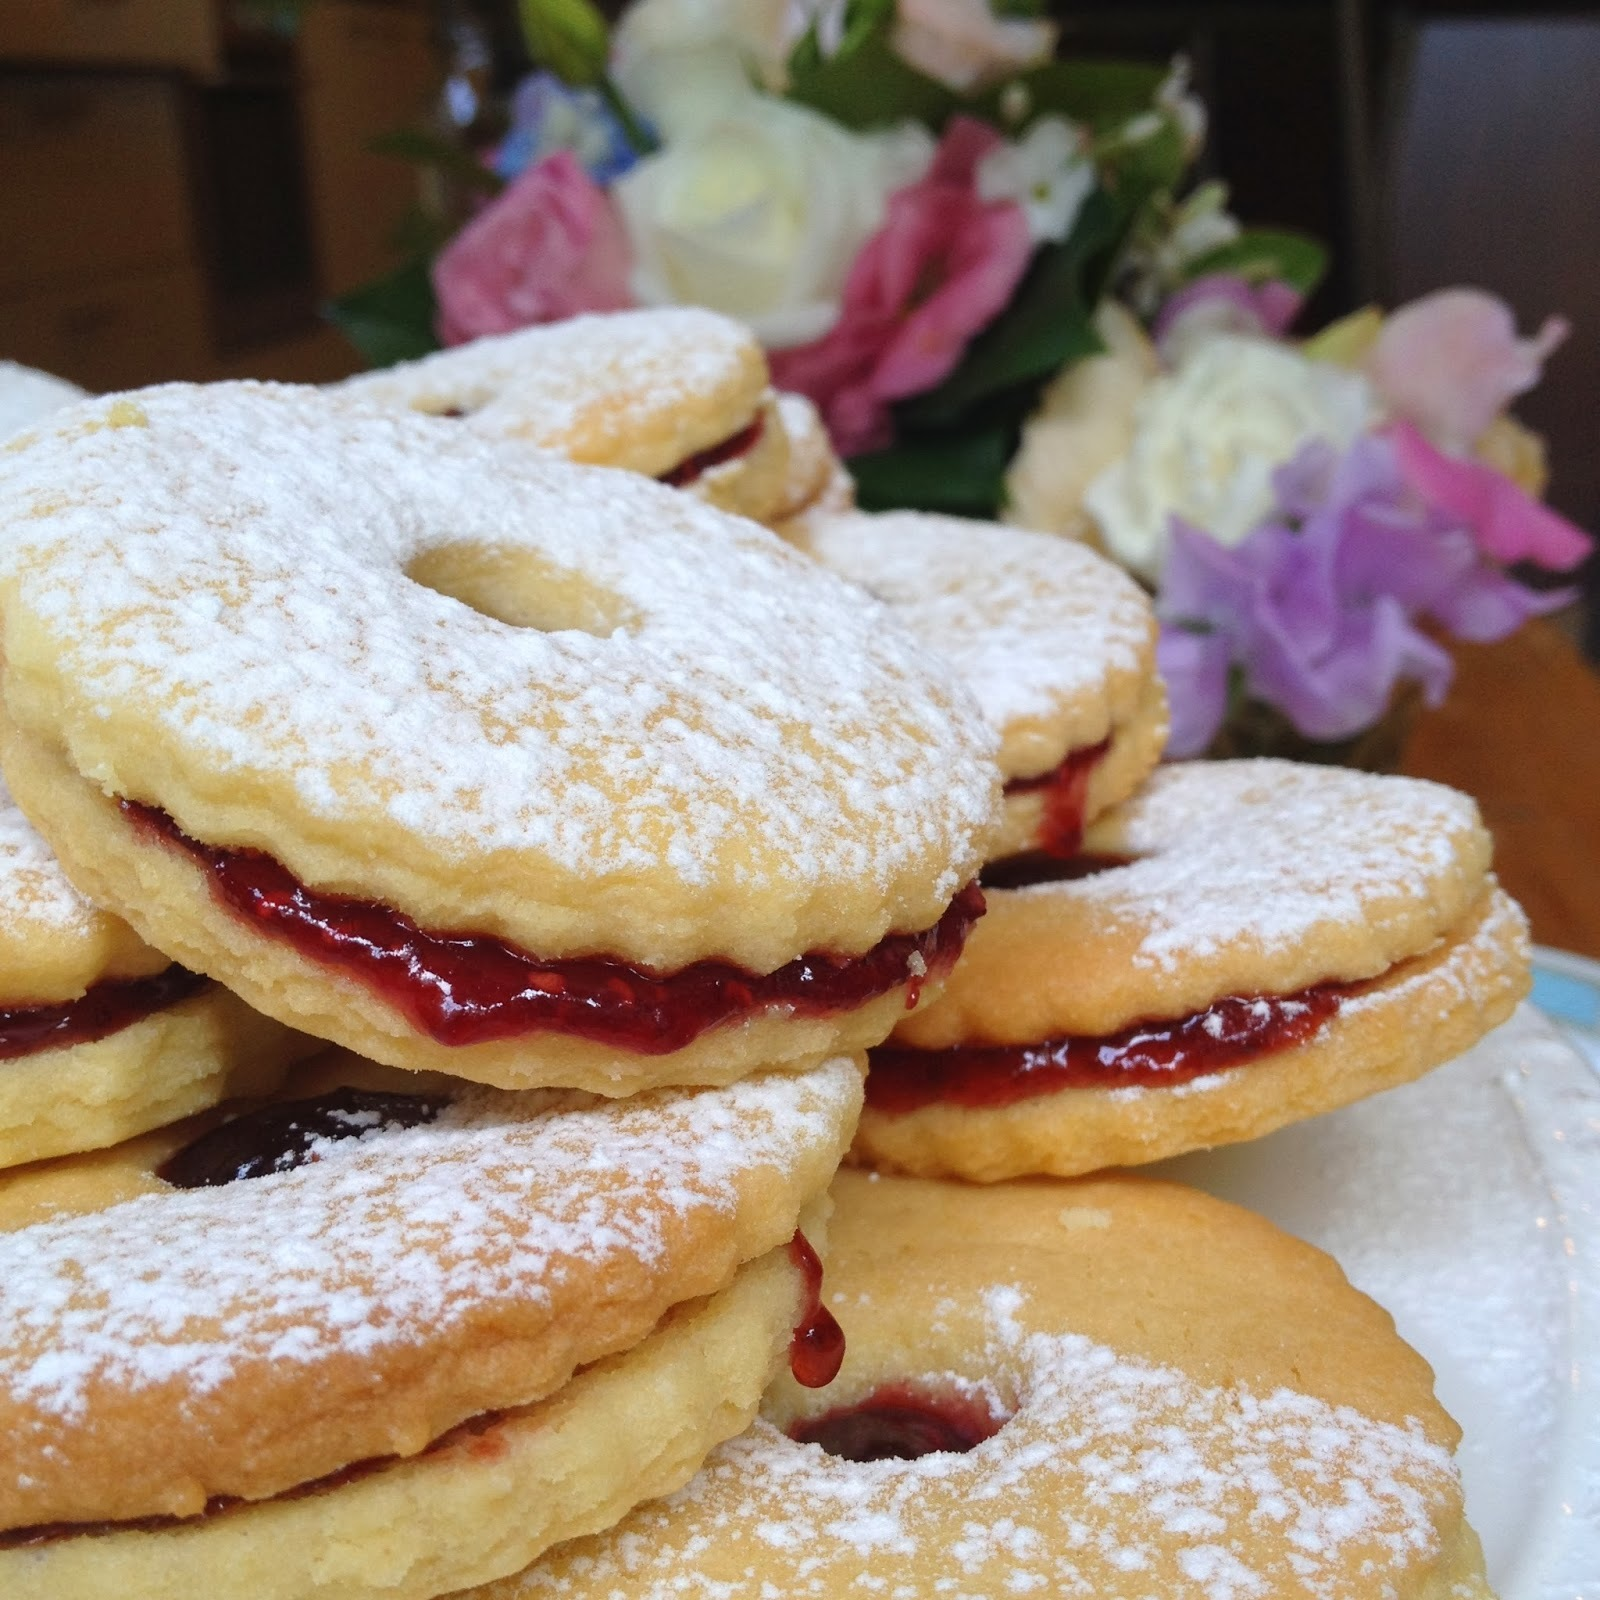 Homemade Shrewsberry Biscuits